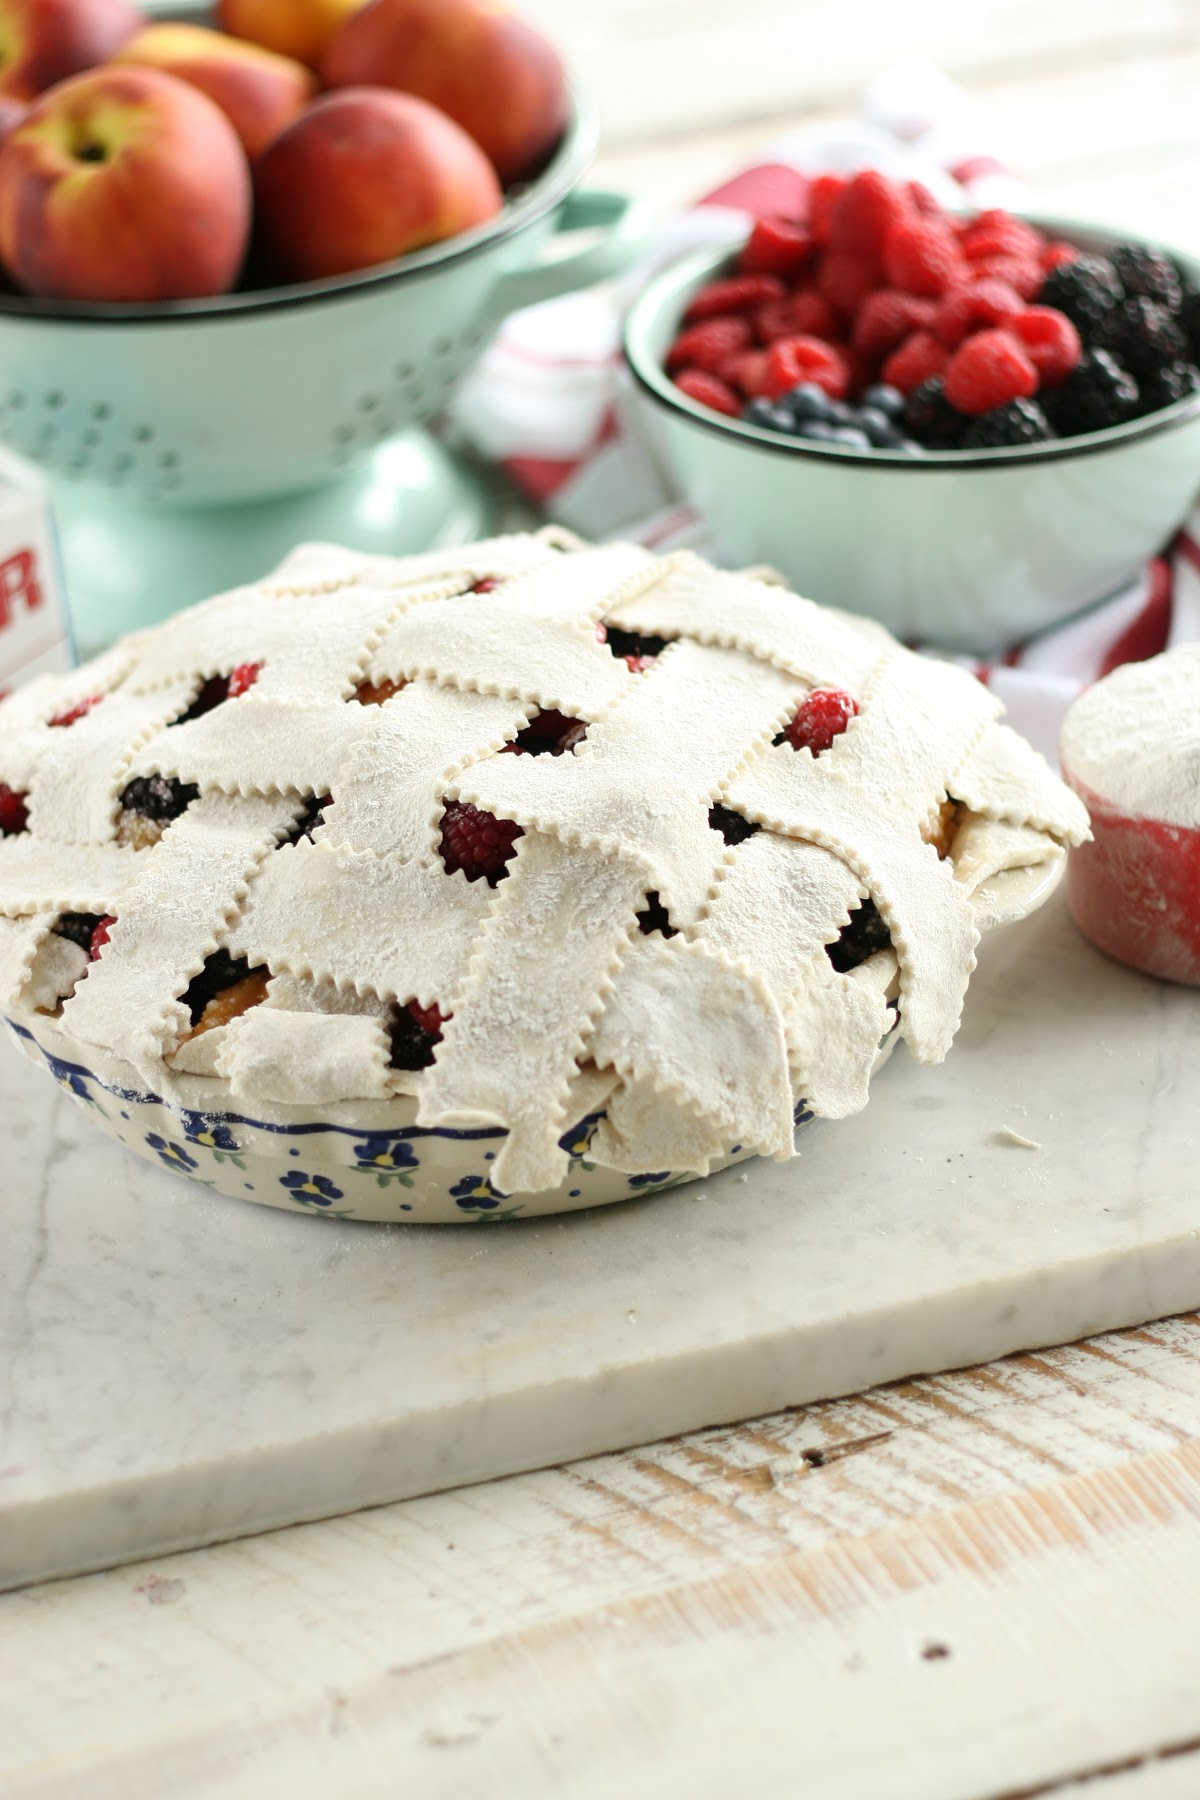 weaving lattice crust on berry pie in blue floral pie plate.